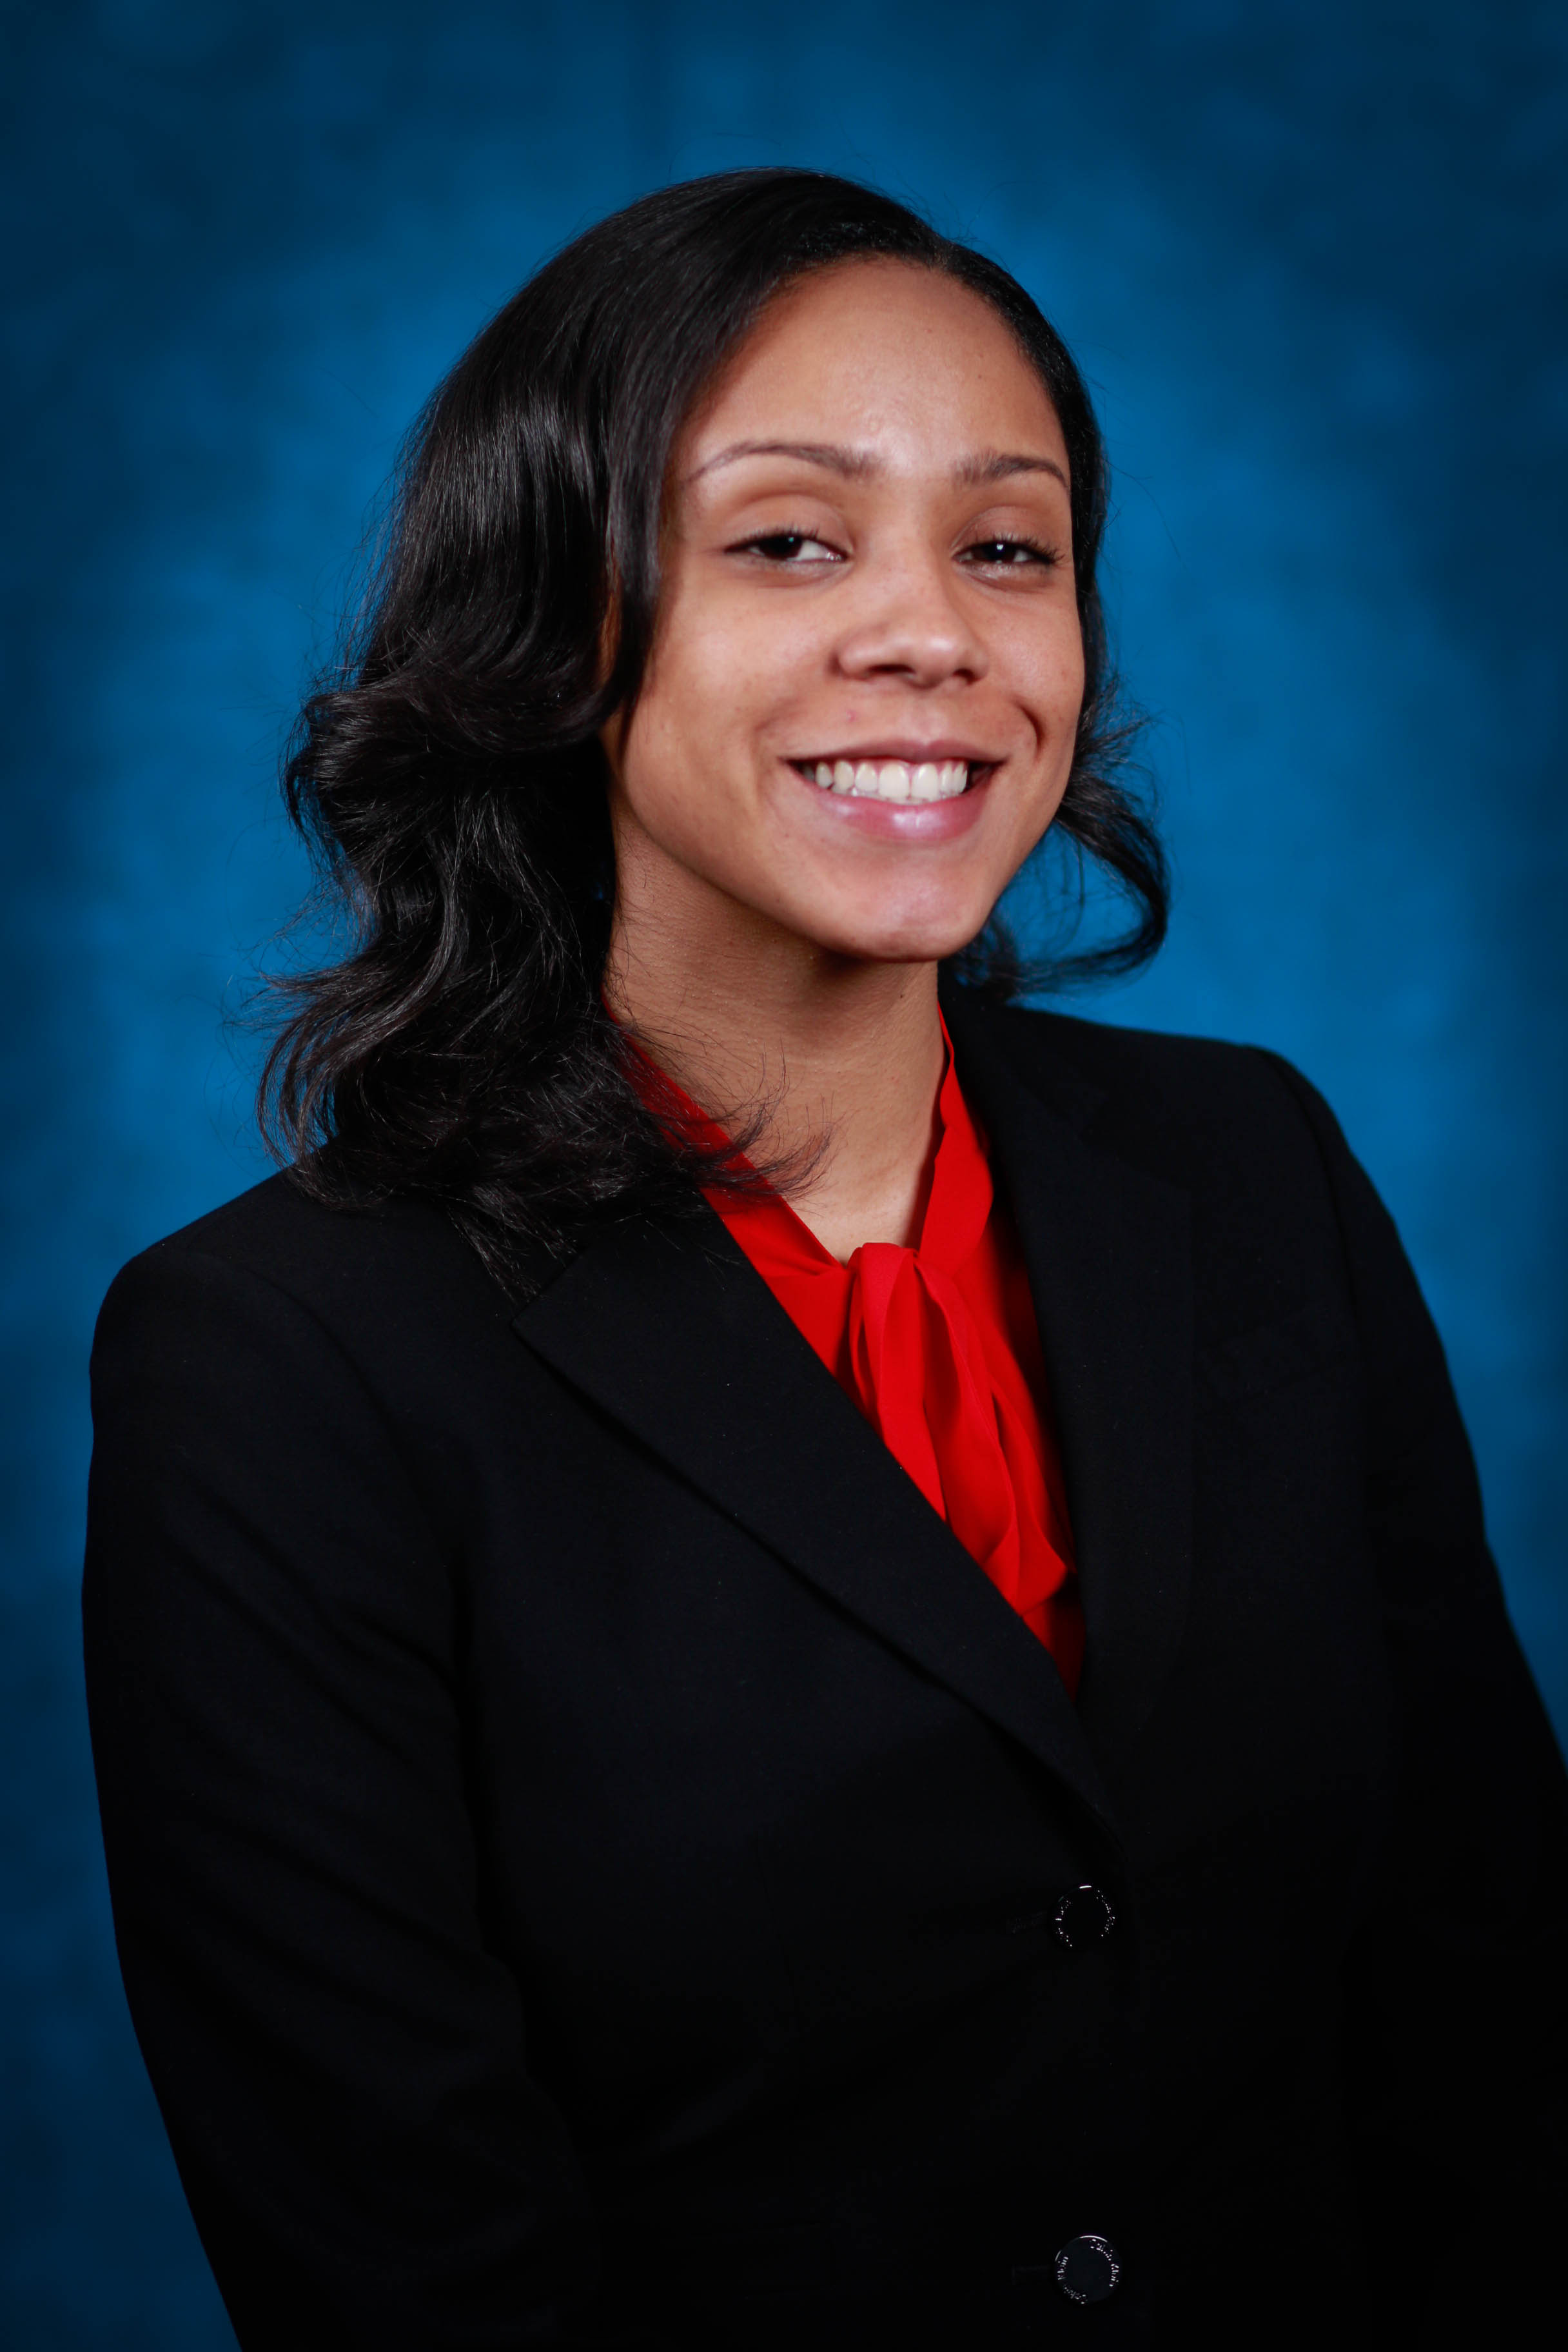 2014 Cohort Teachers College Columbia University Chairman Director Chair Dc 355 Ashlee Is A Special Education Teacher At Drew Elementary In Northeast Washington She Began Her Teaching Career As Fellow And Has